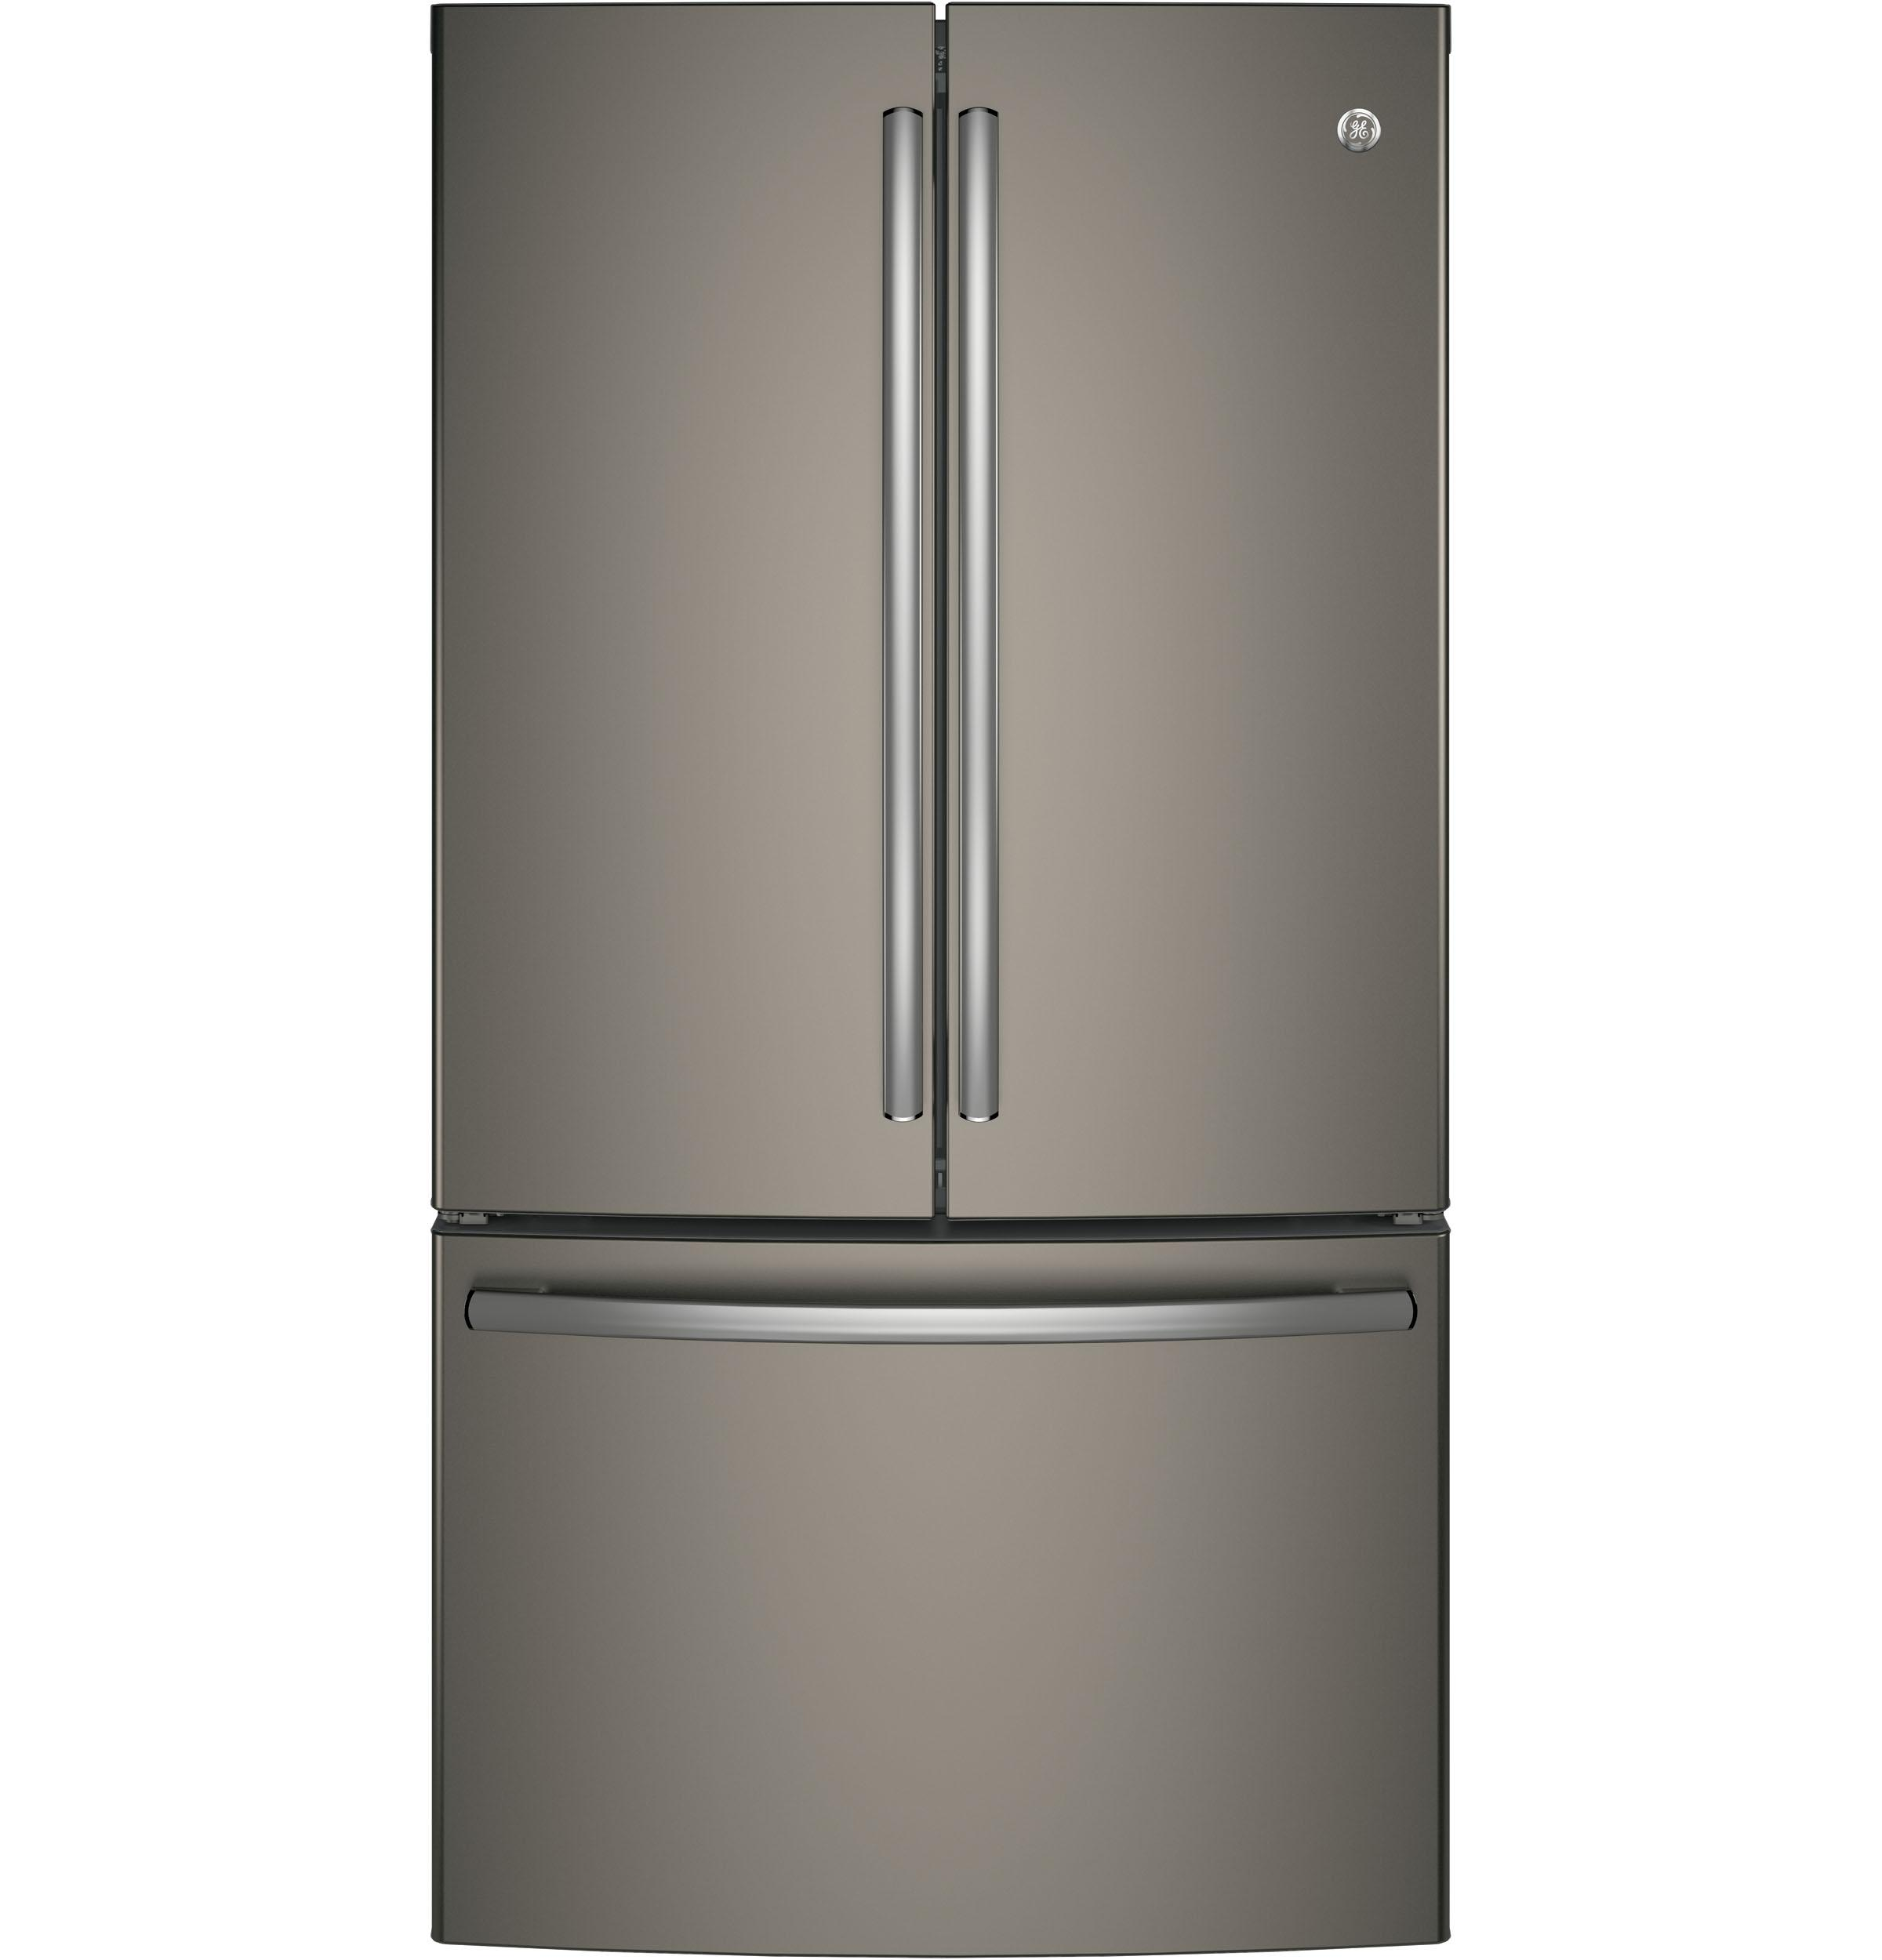 GE(R) ENERGY STAR(R) 28.5 Cu. Ft. French-Door Refrigerator